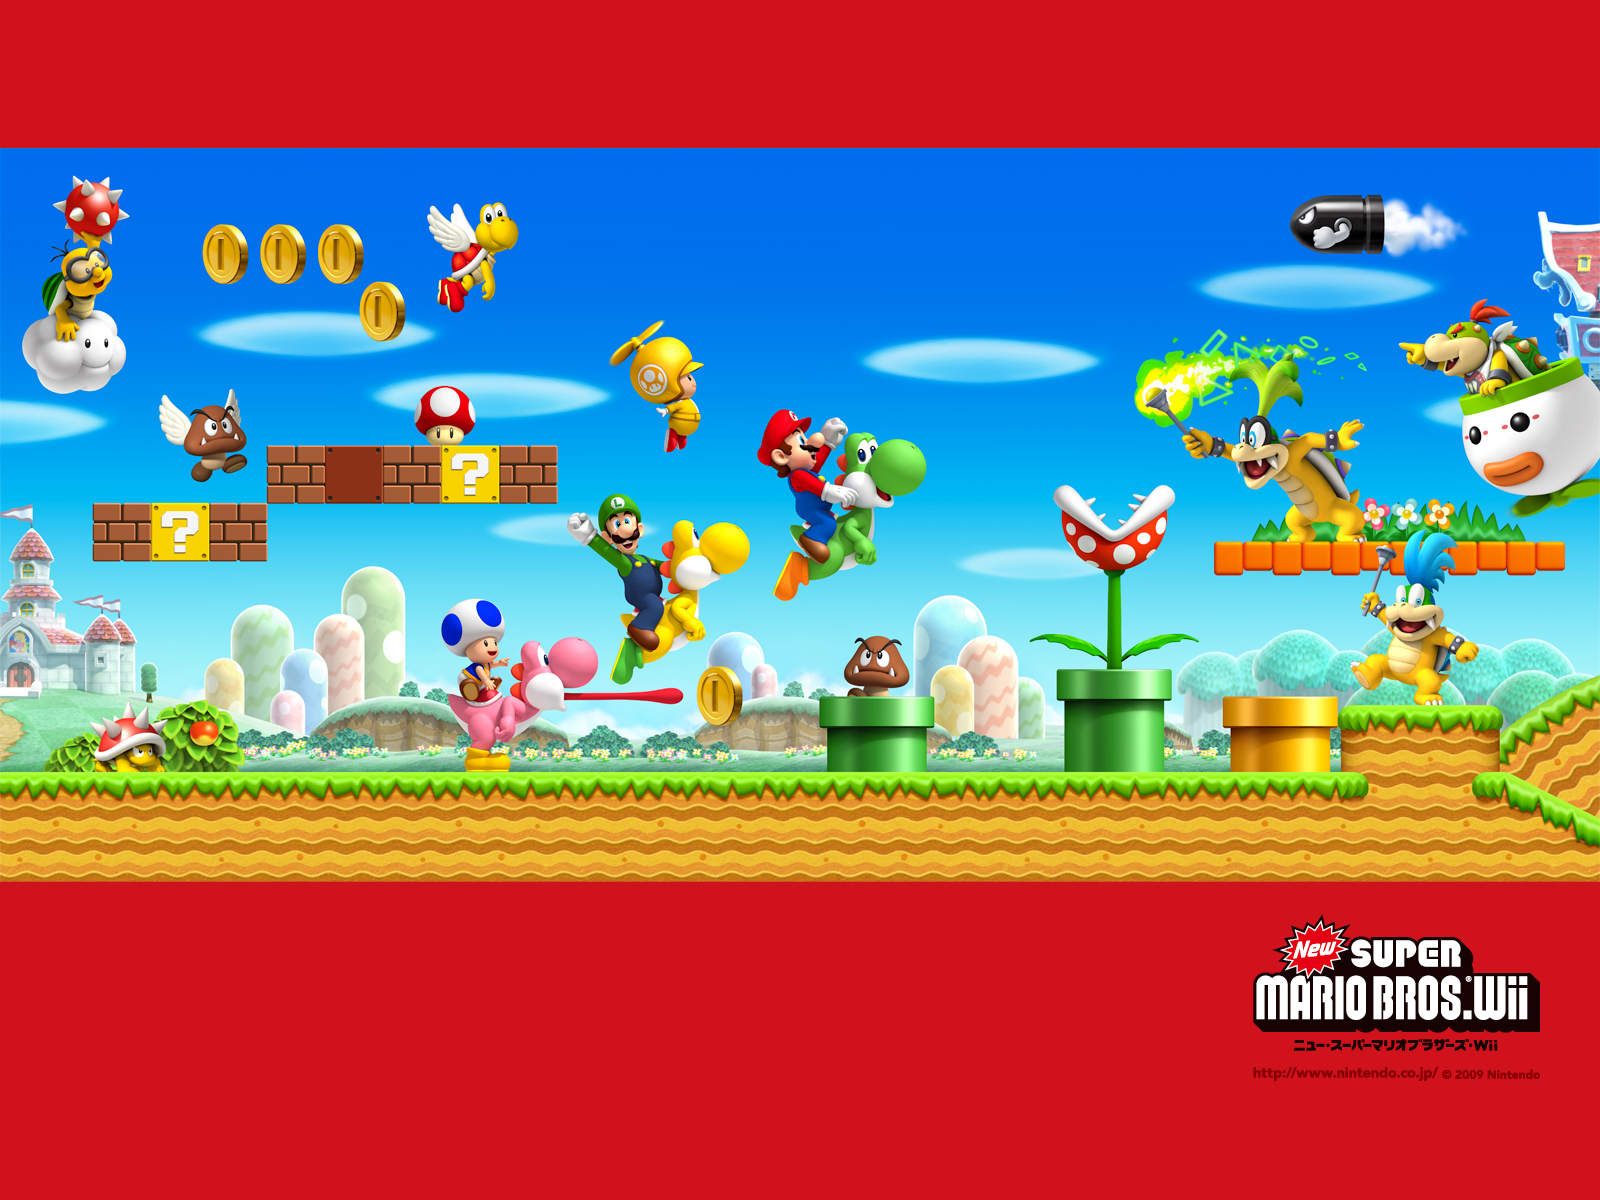 Tmk Downloads Images Wallpaper New Super Mario Bros Wii Wii